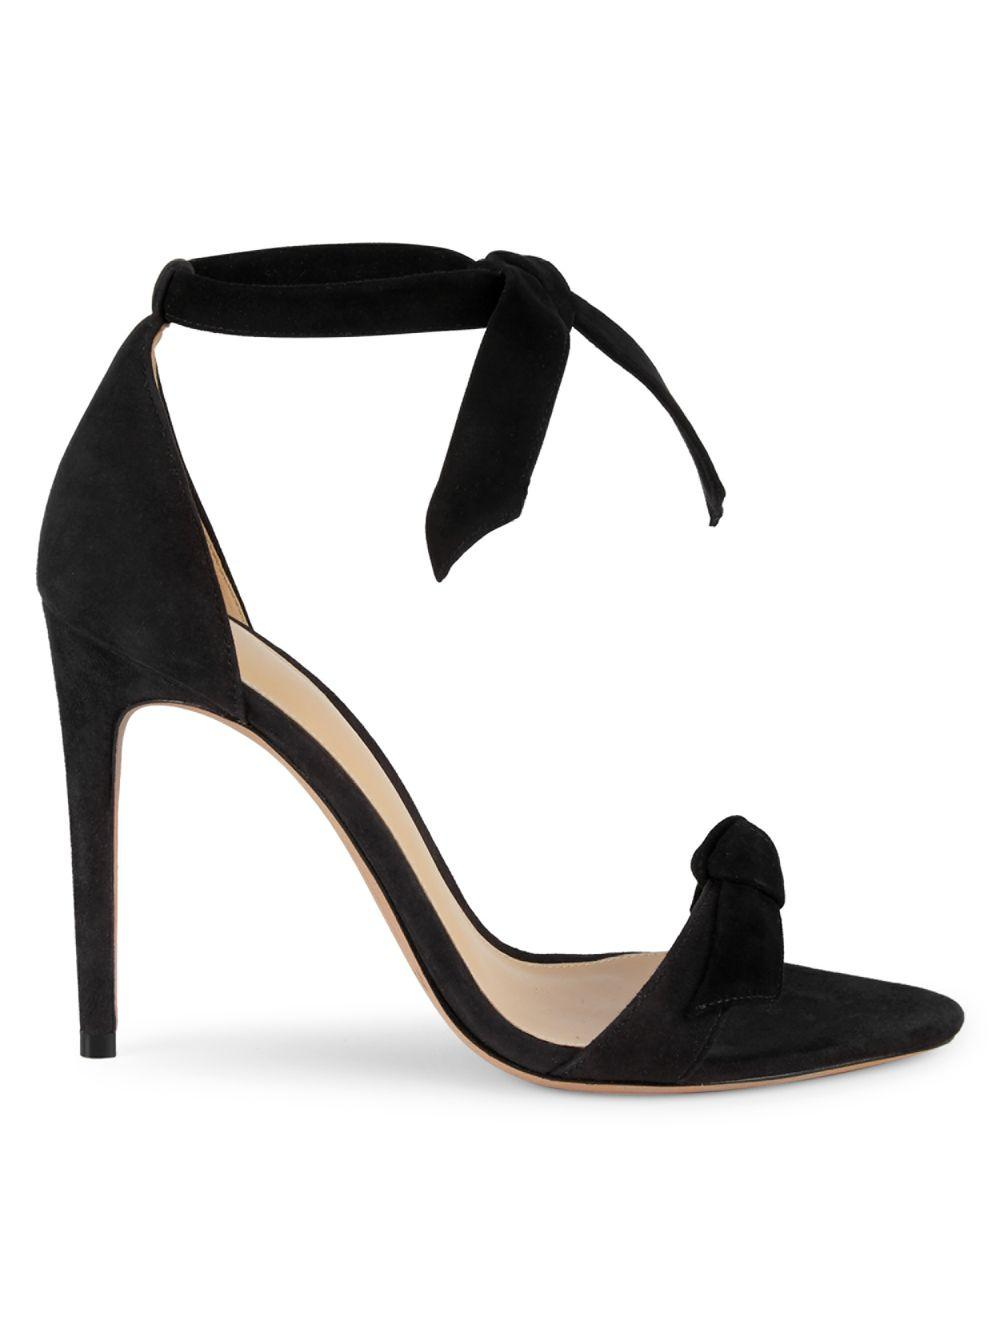 8398d7e1564 Lyst - Alexandre Birman Lovely Suede Ankle-strap Heeled Sandals in Black